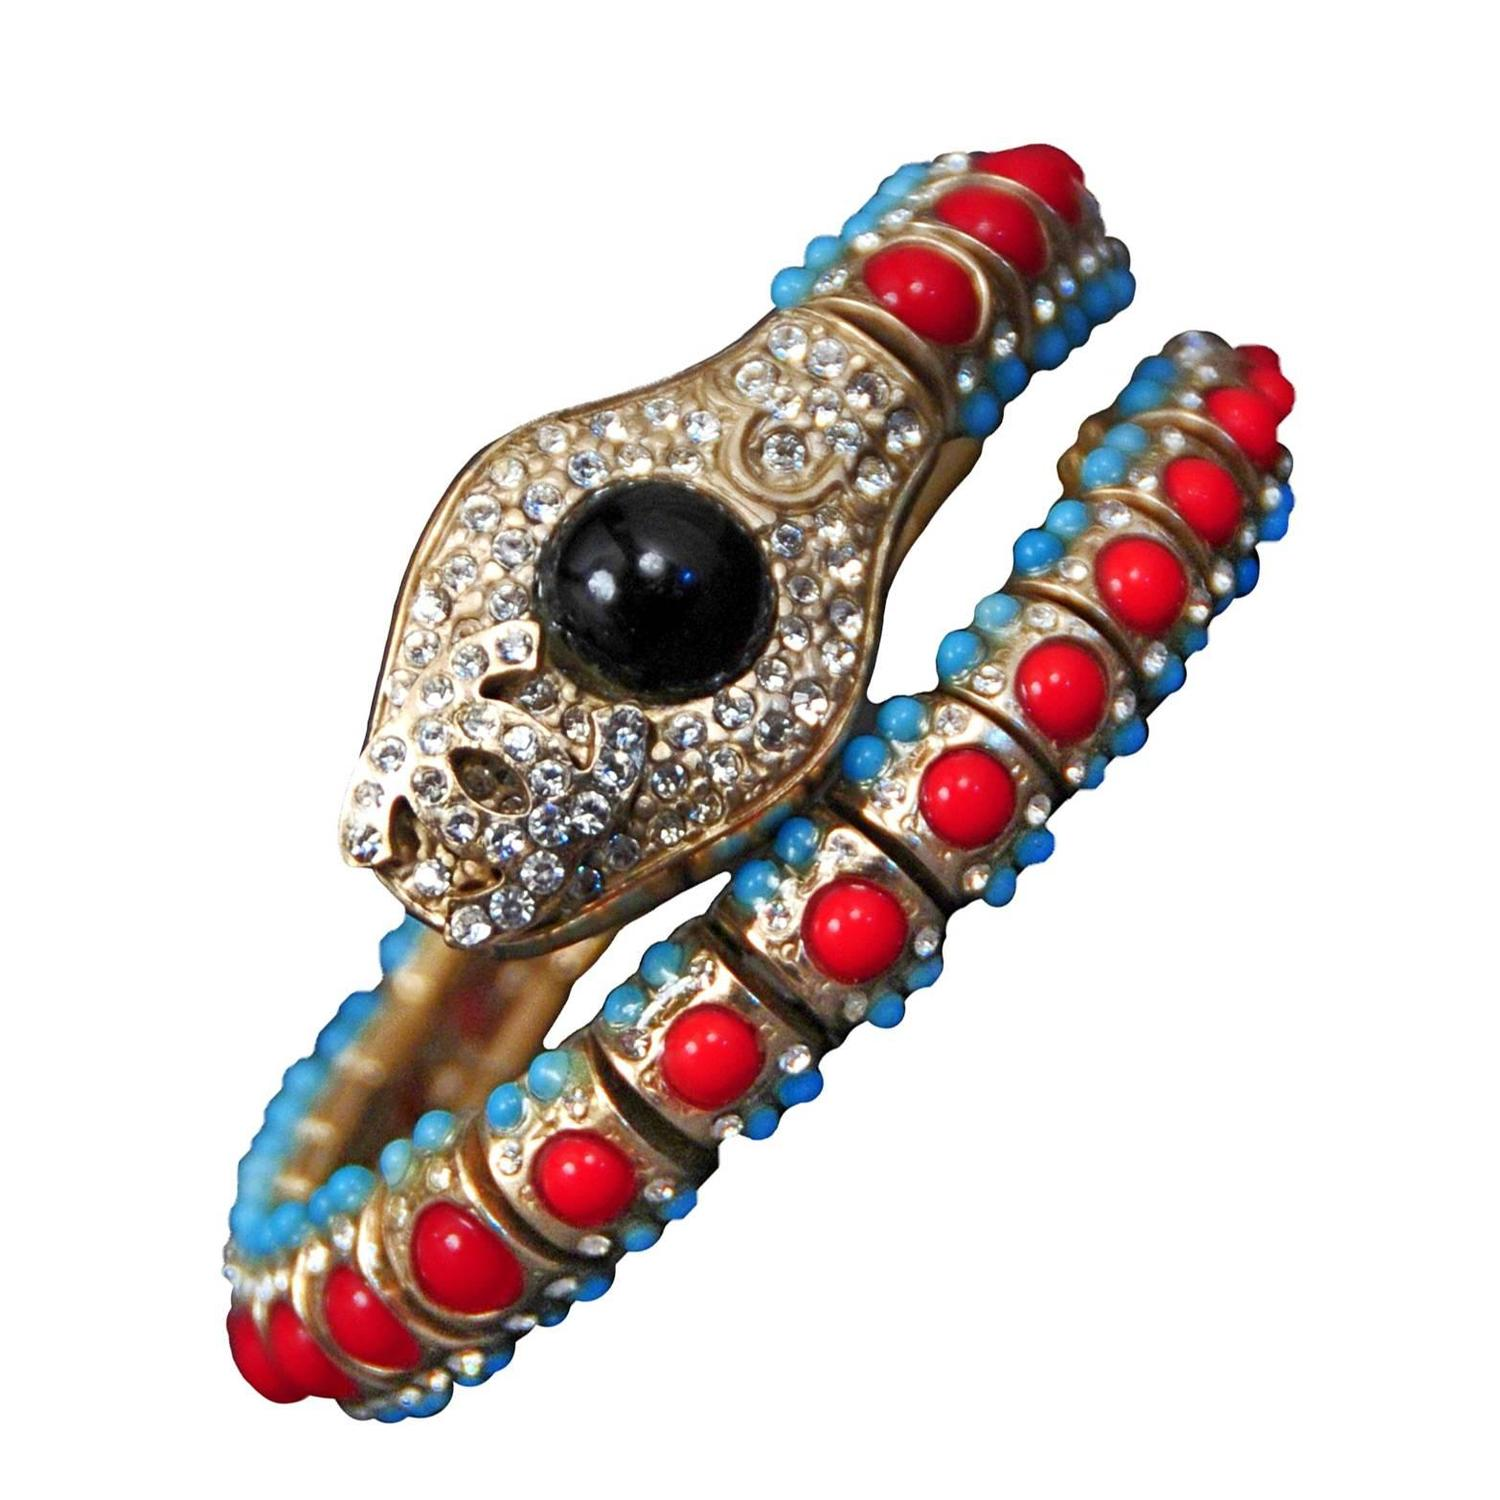 Chanel Jeweled Snake Bracelet For Sale At 1stdibs